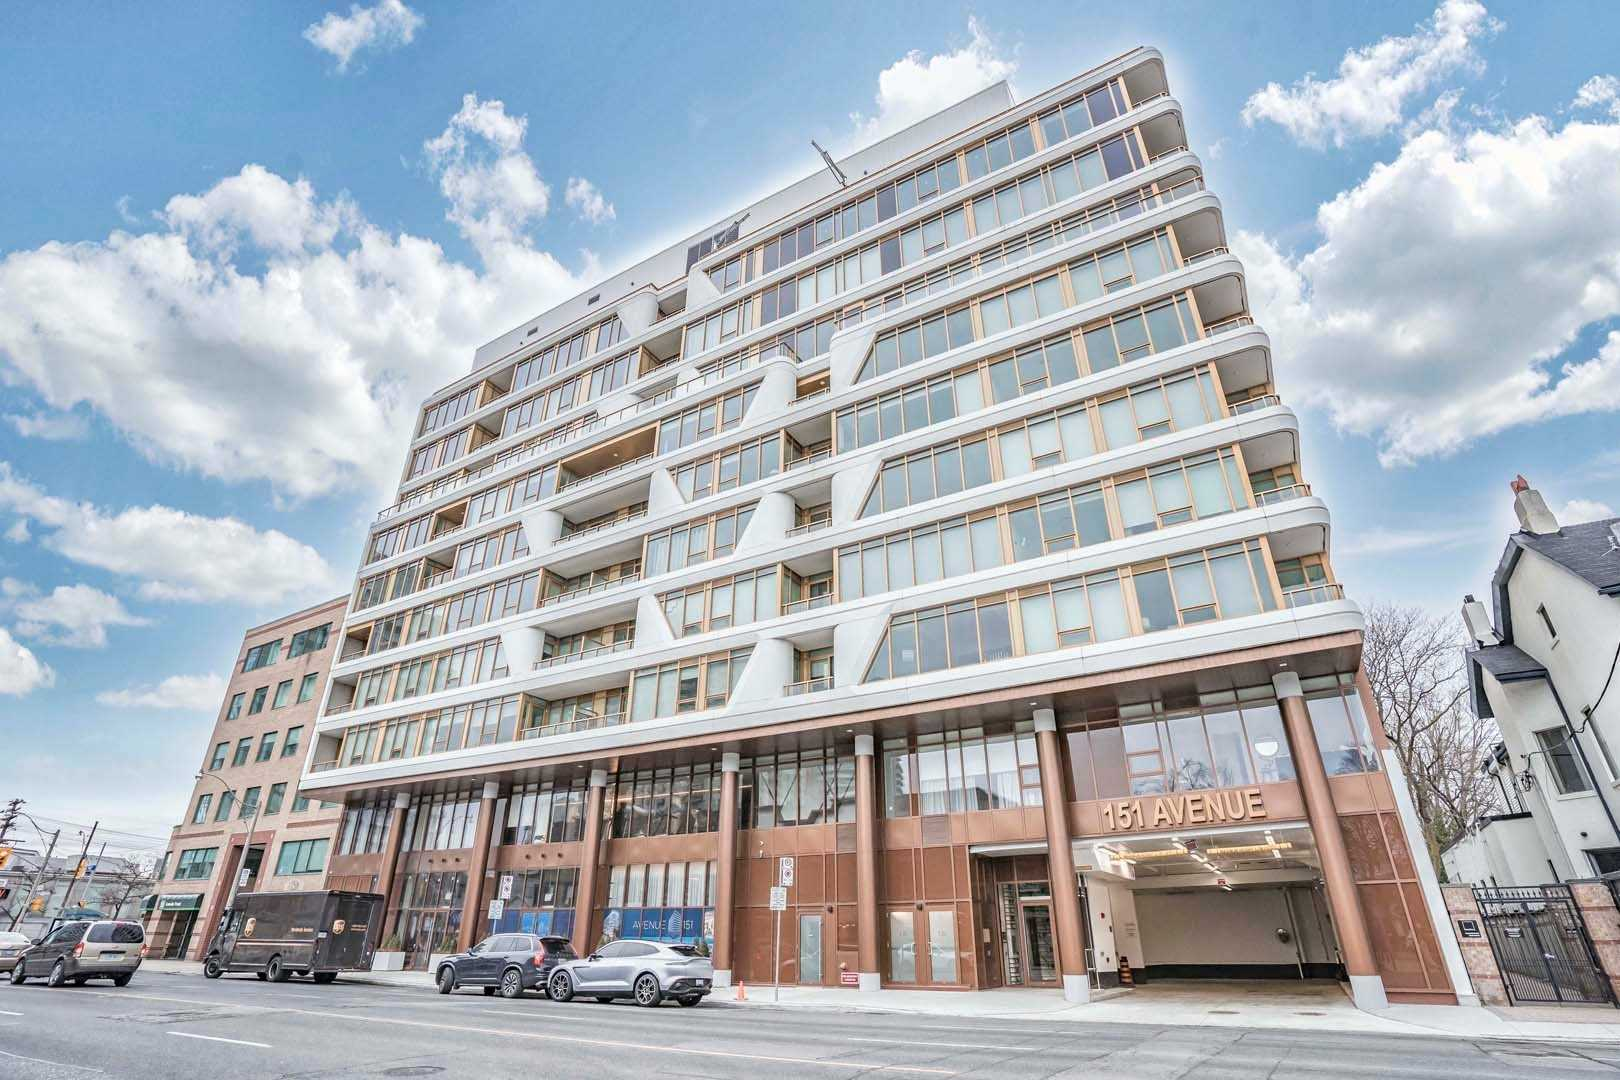 Read more about the article 151 Avenue Road West 1 Bedroom + Den New Ready To Move-In $918,000